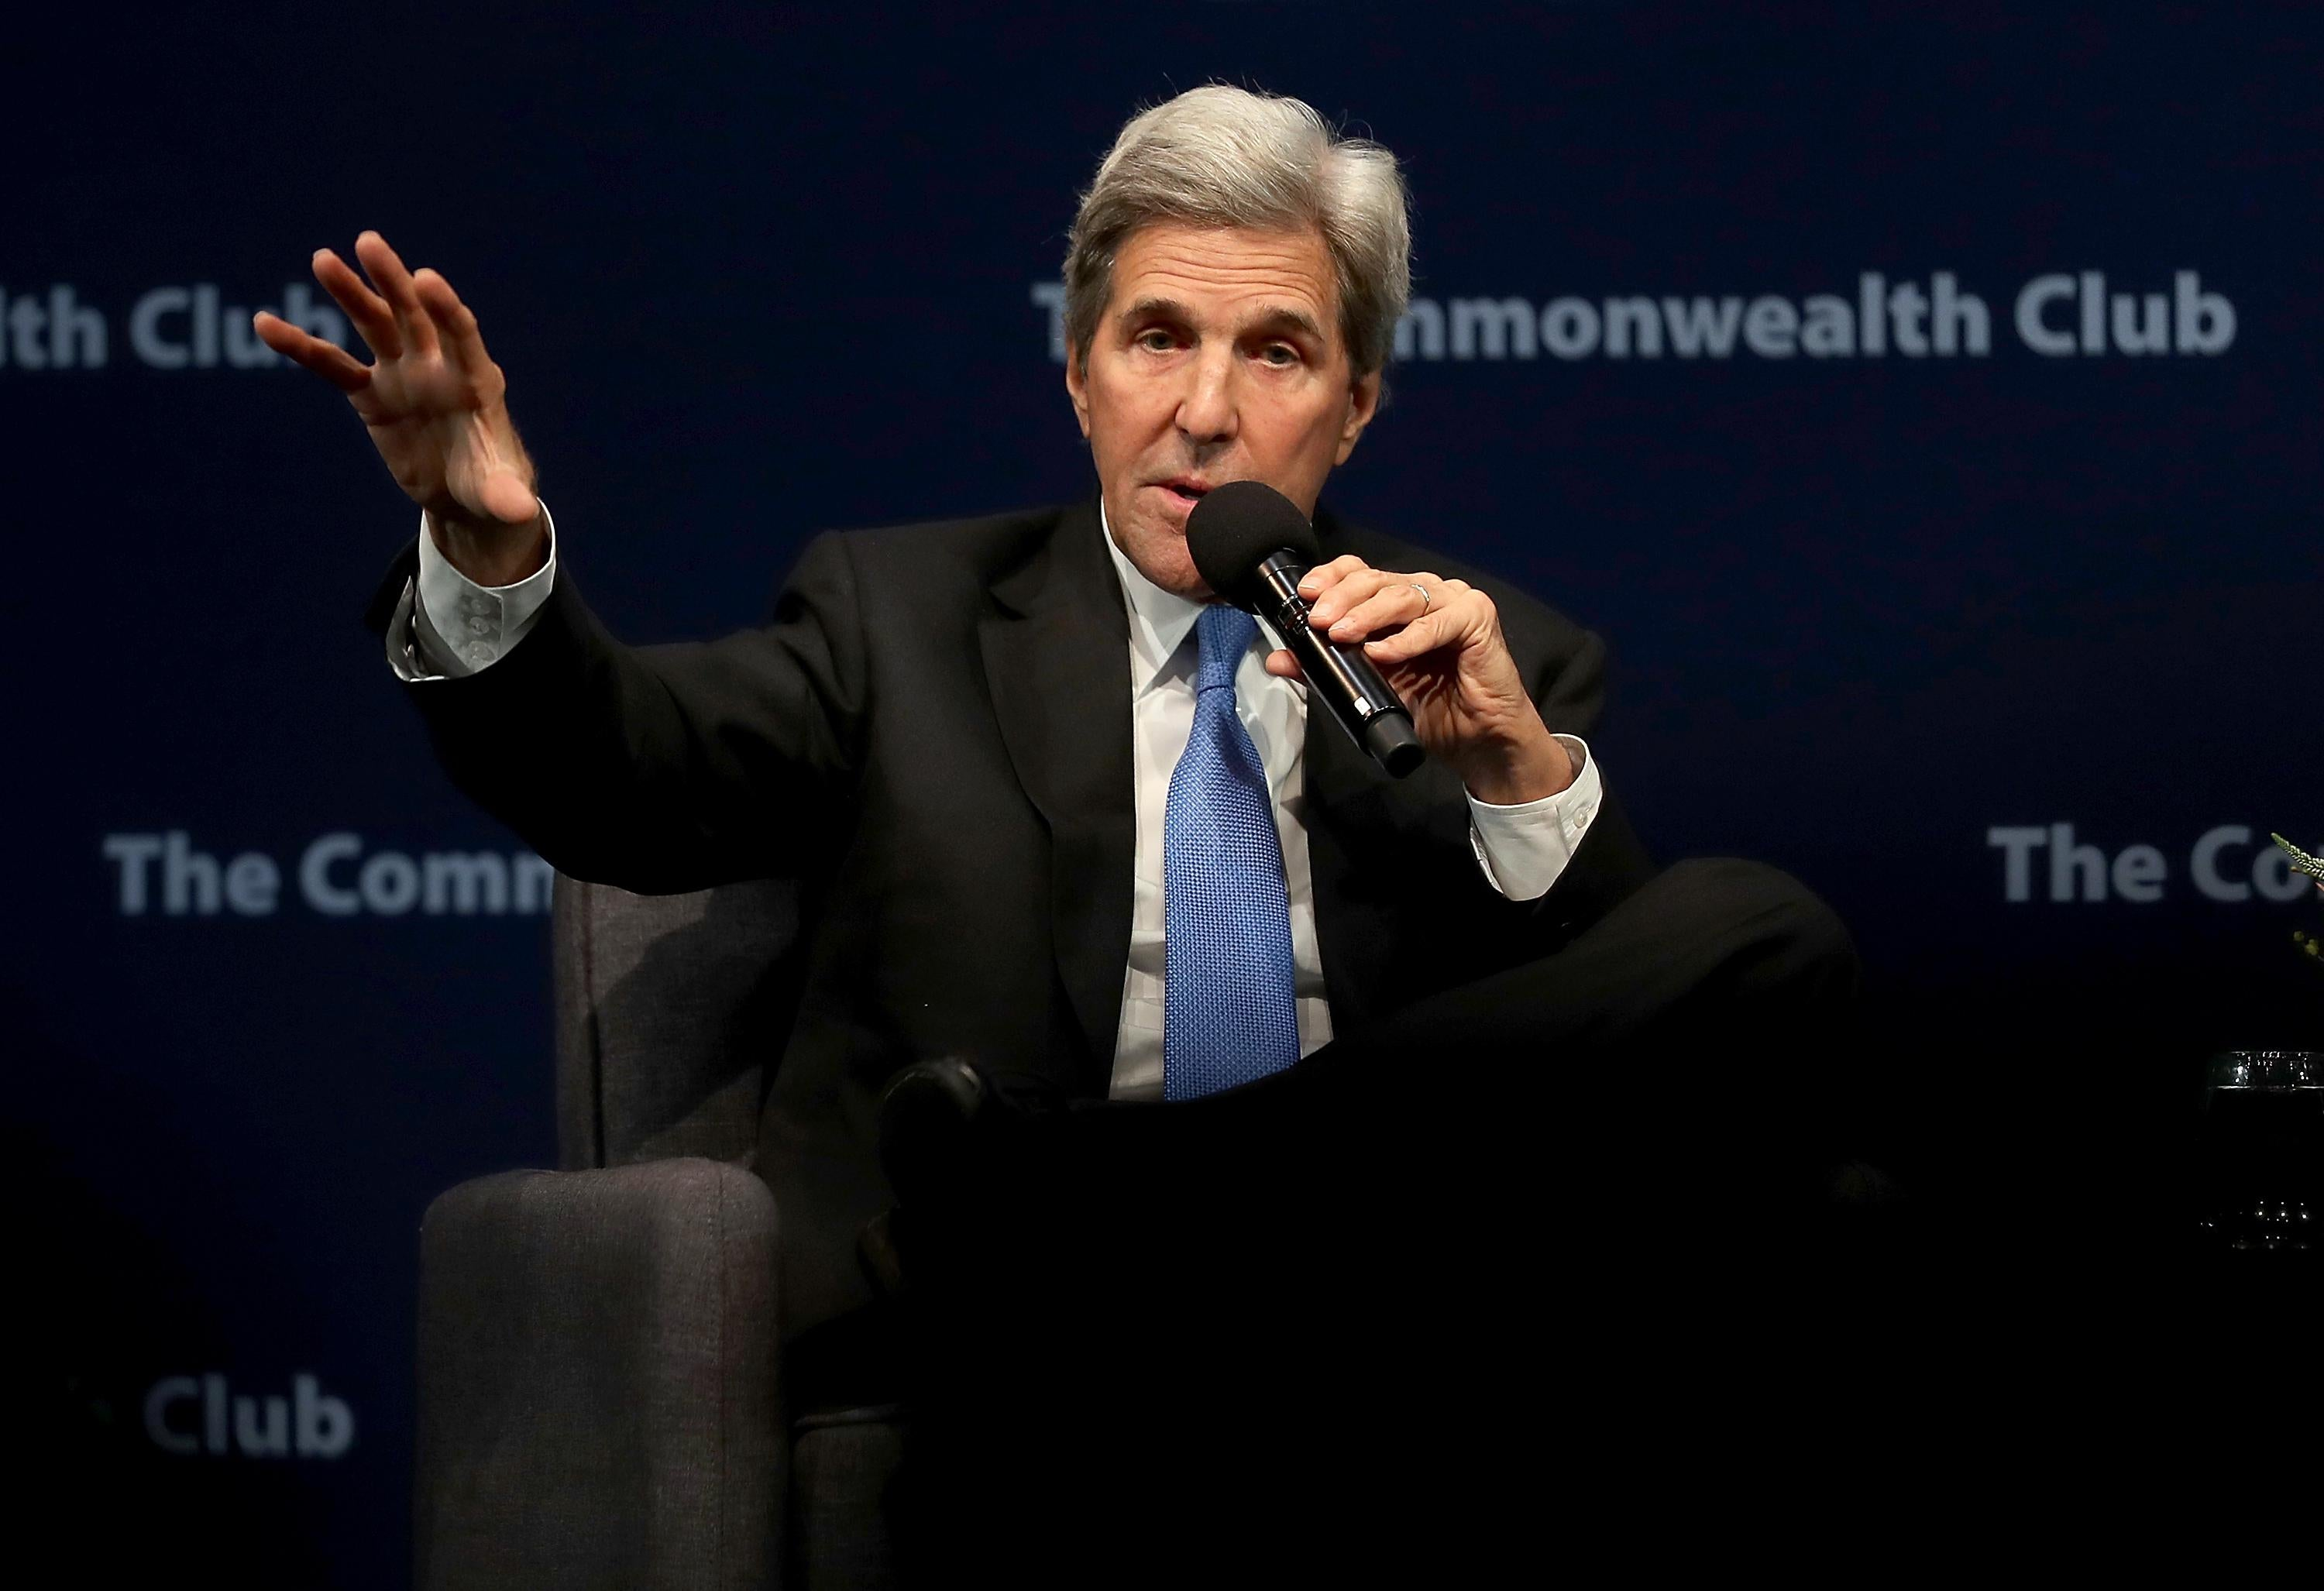 Former Secretary of State John Kerry speaks during a Commonwealth Club of California event at the Marines' Memorial Theatre on September 13, 2018 in San Francisco, California.